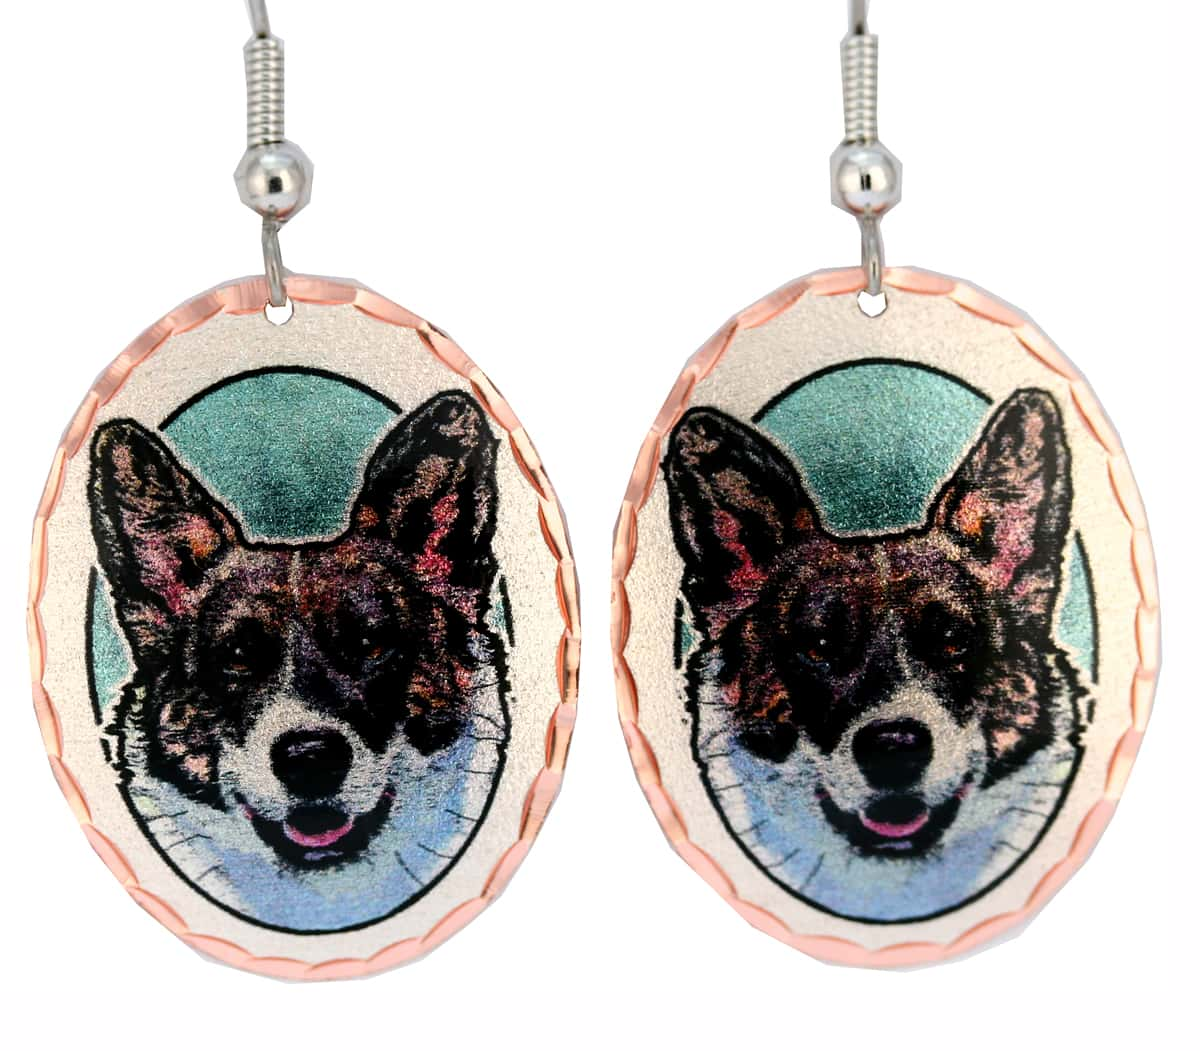 Cardigan Welsh Corgis Earrings